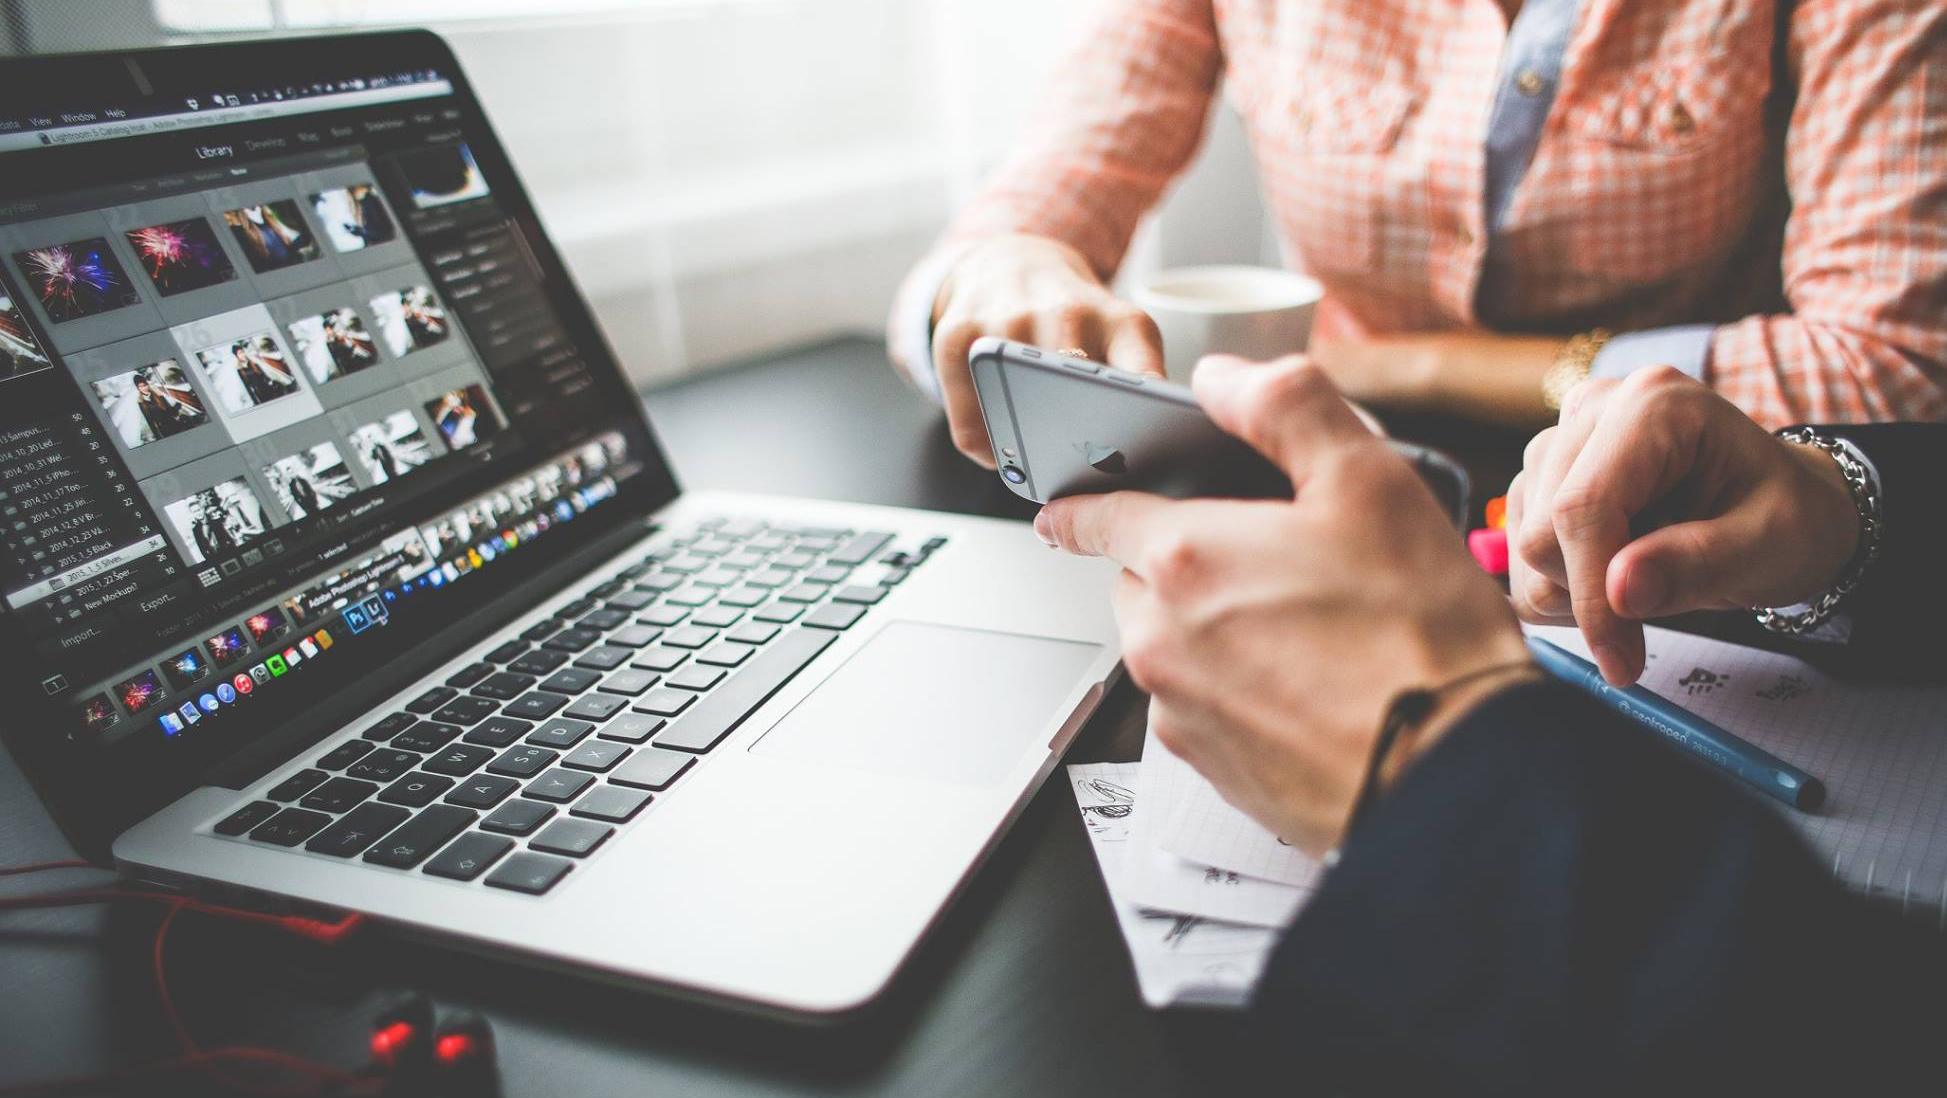 5 Digital Marketing Tips for Your Business